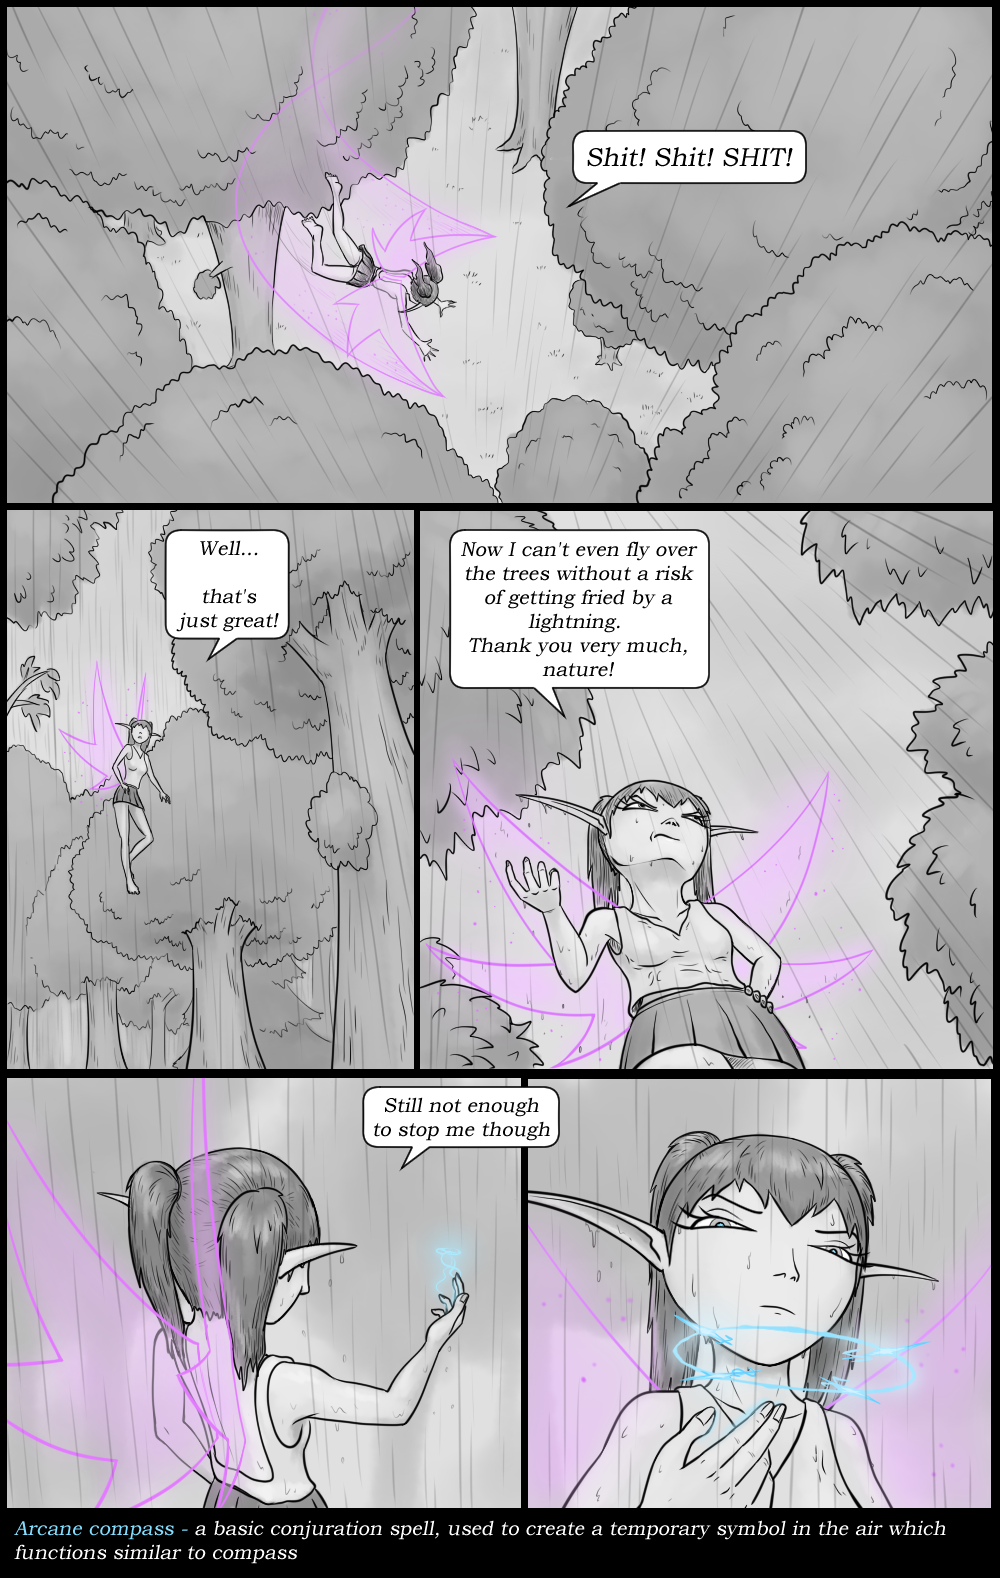 Page 32 - Finding the way (Part 1)